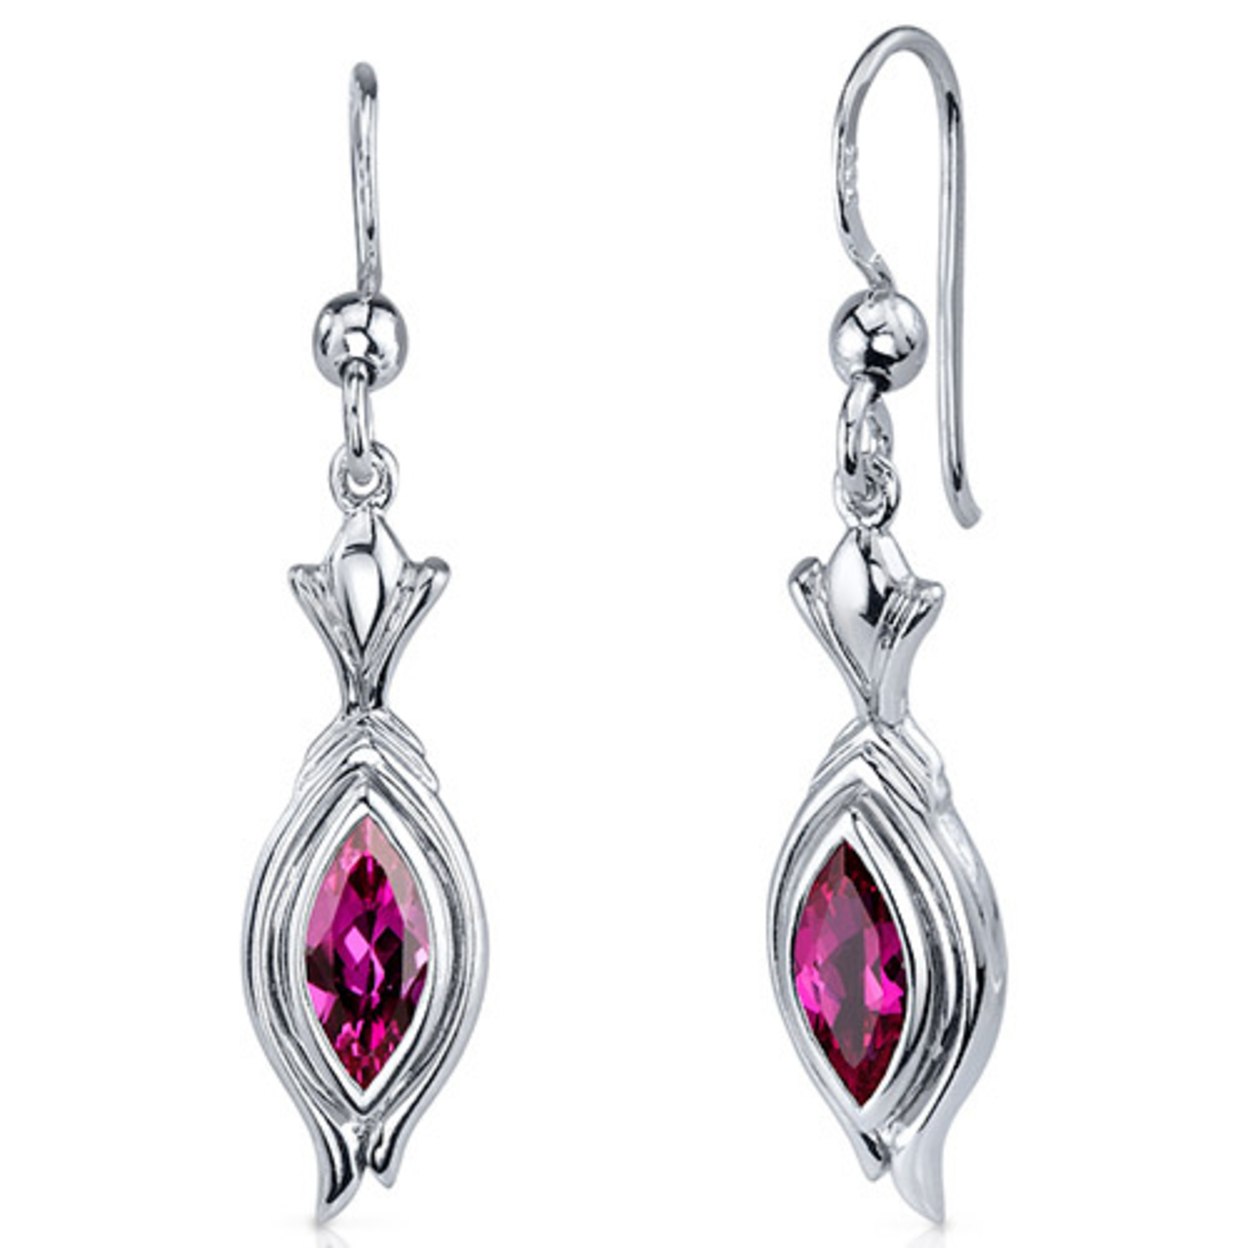 Dynamic Dangle 1.50 Carats Ruby Marquise Cut Earrings In Sterling Silver Style Se7862